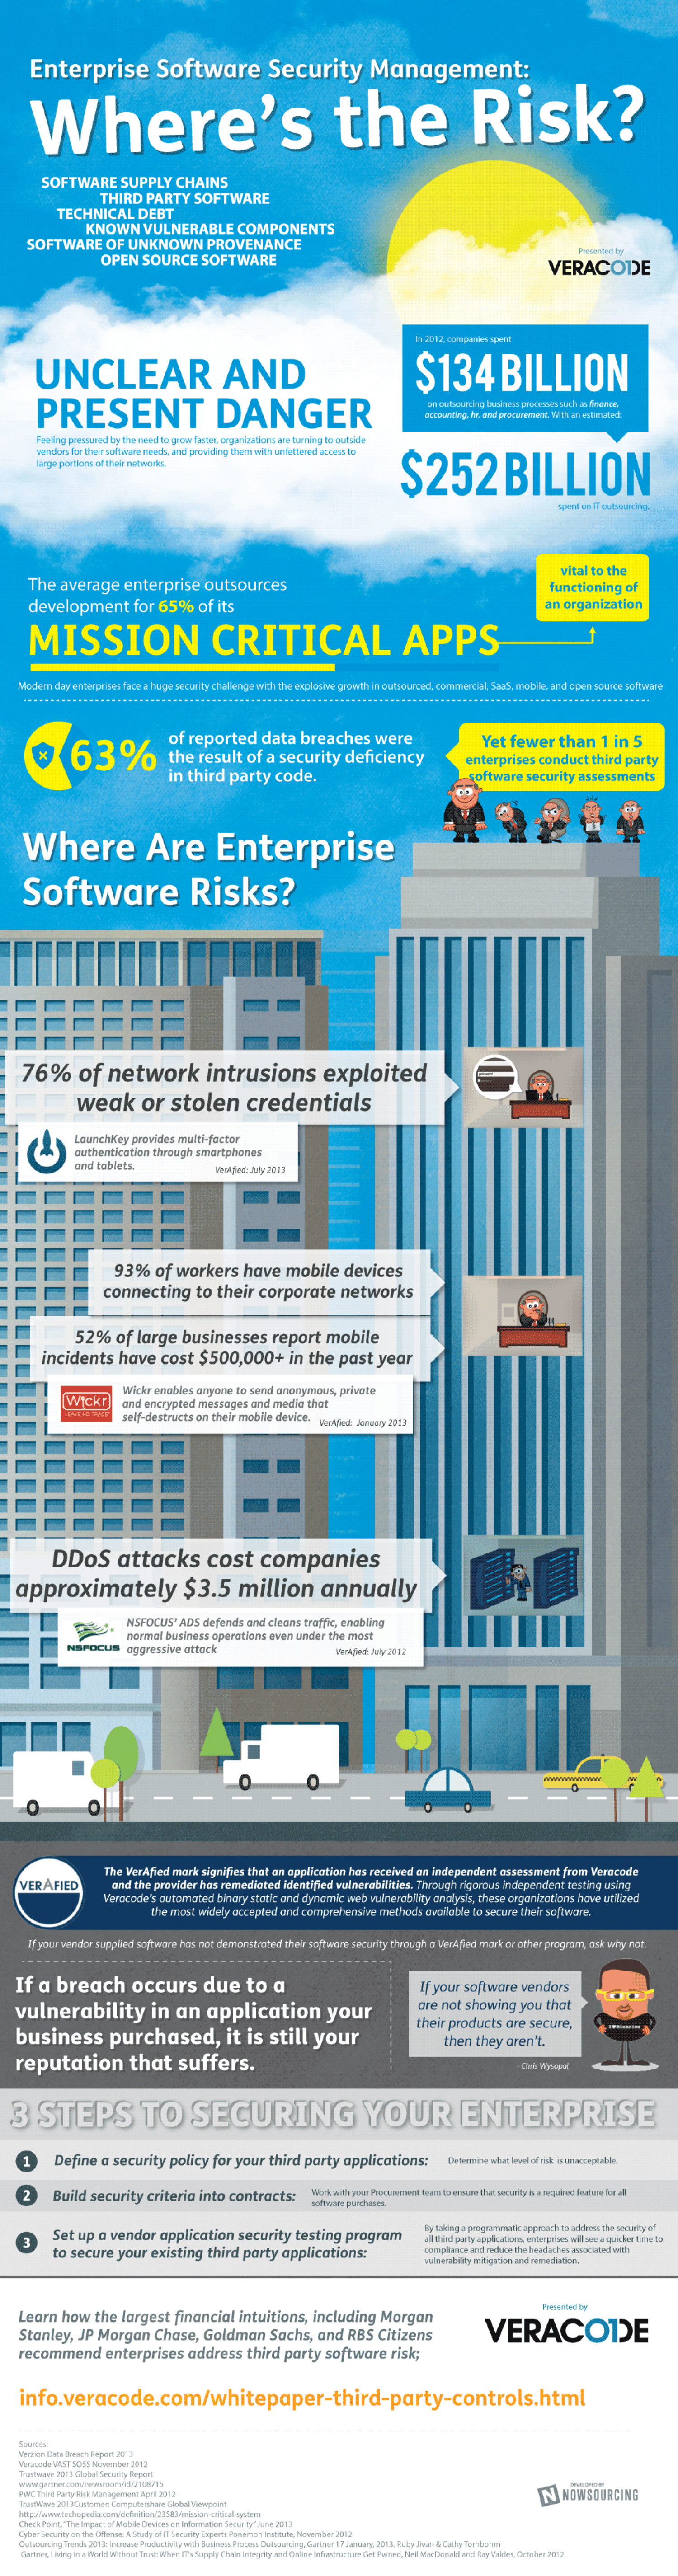 Where's the Risk? Enterprise Software Security Management Infographic